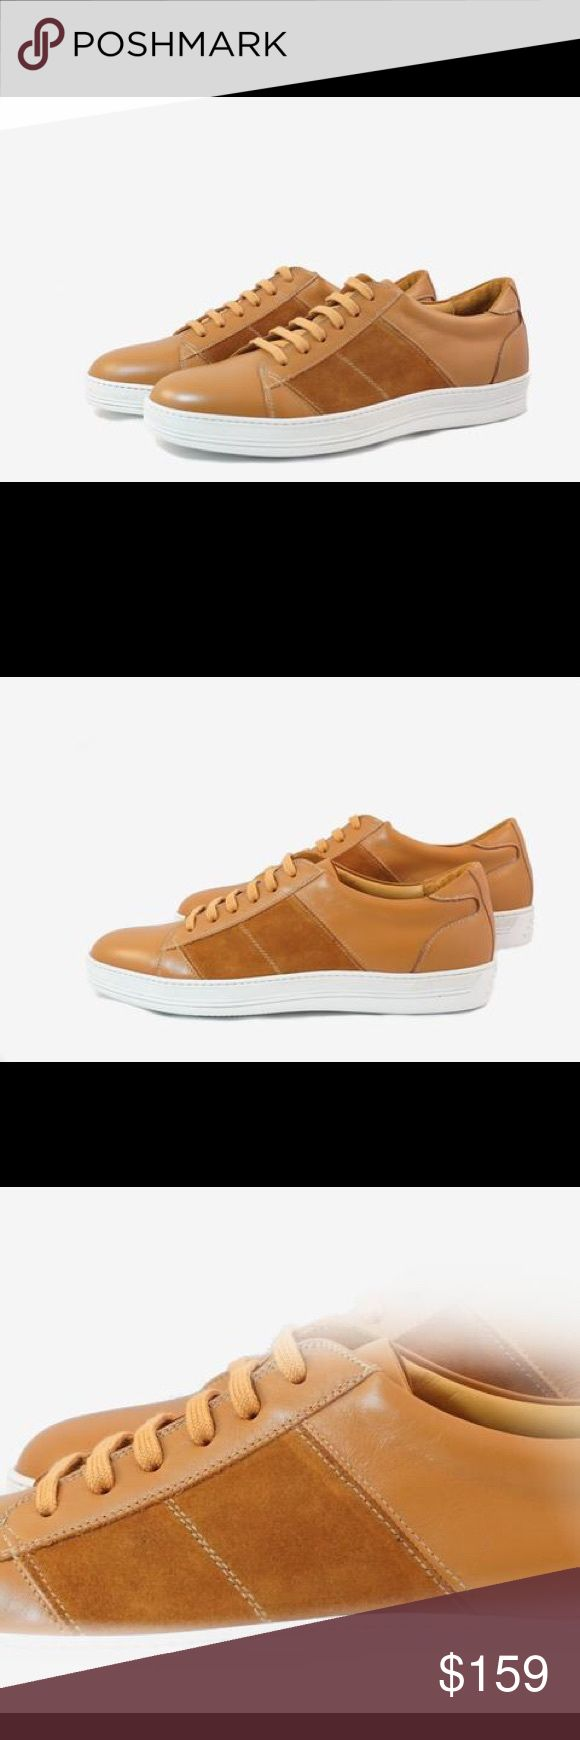 Men Low Top Brown Leather Sneakers. NWT Eye-Catching The design of this sneaker has a distinctive look making it highly recognizable for the use of two leathers and comfort. A beautiful shade of brown calf leather hand picked from our artisans in the small town of Montegranaro, Italy famously known for it's quality of leather.  Stripes of soft suede in calf on both sides perfectly stitched making it stand out in an elegant way.  Dark Beige leather insole and white rubber sole. Germano…